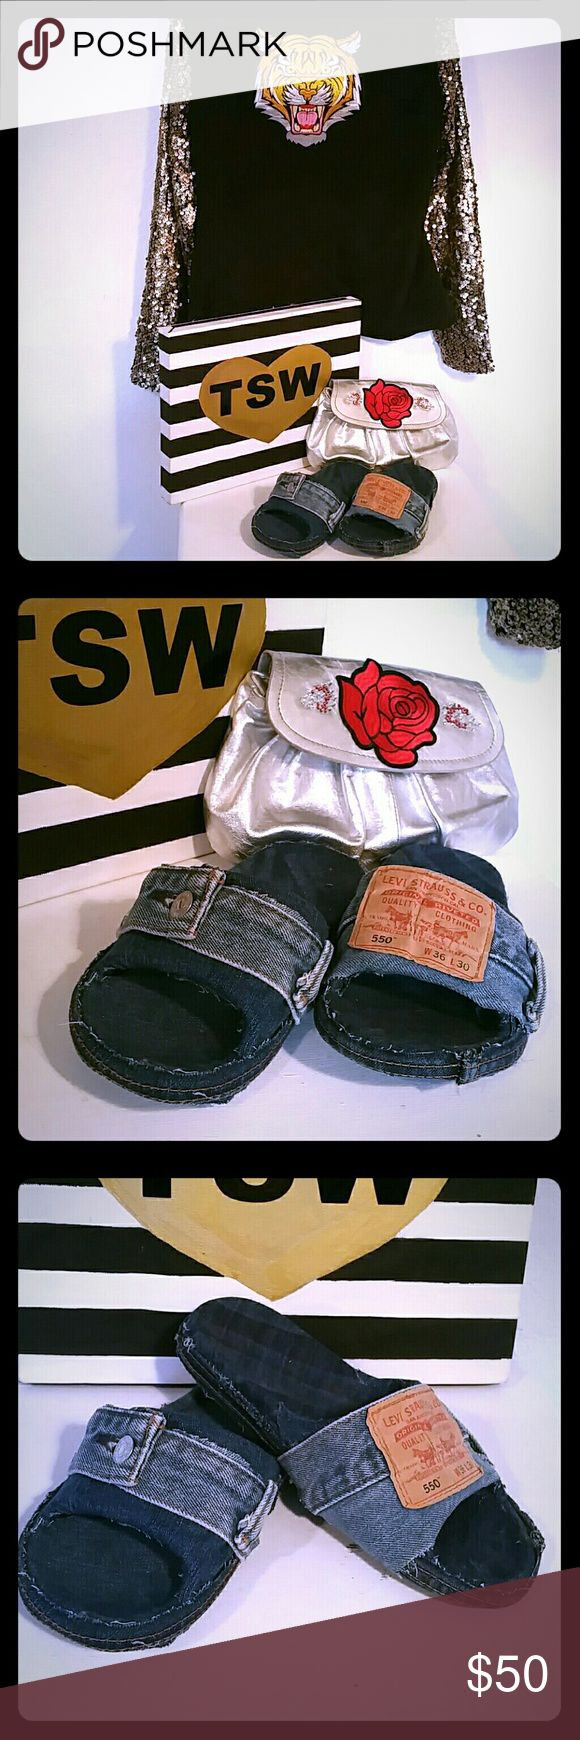 2 TONED DENIM SLIDES HANDMADE LEVIS 550 7 2 toned, light and dark denim_DENIM SLIDES HANDMADE LEVIS 550 Size 7 so comfy, sold as is, handmade by us! :) tswcouture Shoes Slippers